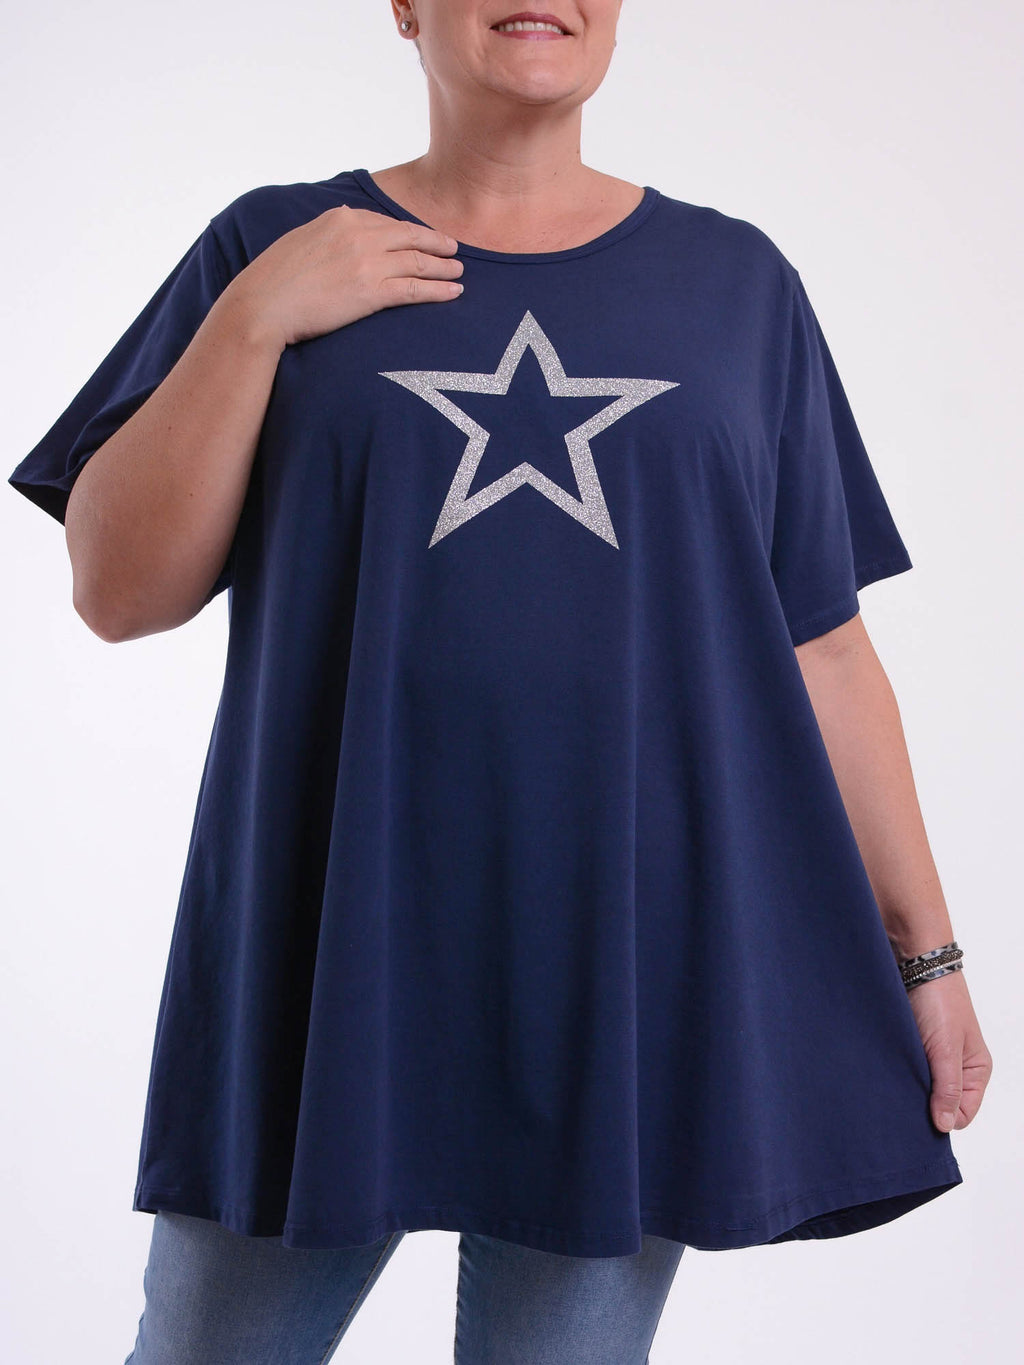 Basic Cotton Swing T Shirt - Round Neck 10516 GLITTER STAR - Pure Plus Clothing